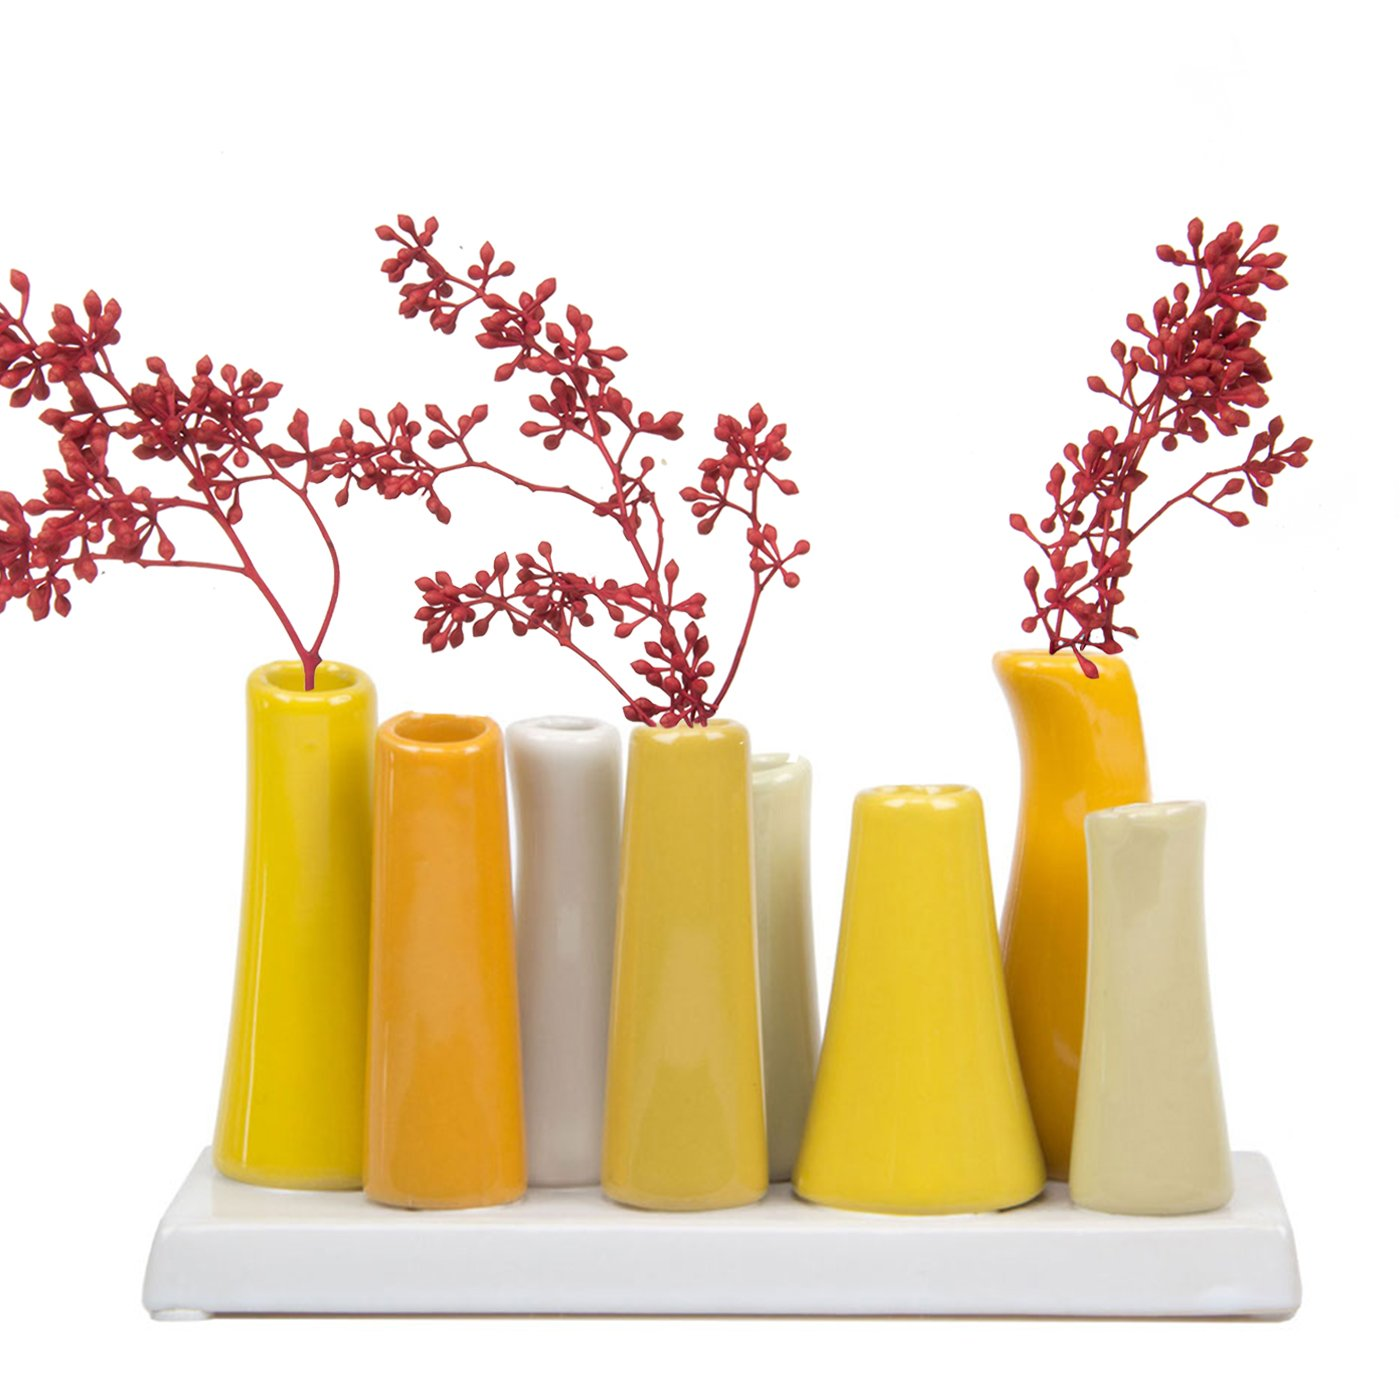 Chive - Pooley 2, Unique Rectangle Ceramic Flower Vase, Small Bud Vase, Decorative Floral Vase for Home Decor, Table Top Centerpieces, Arranging Bouquets, Set of 8 Tubes Connected (Yellow, White)